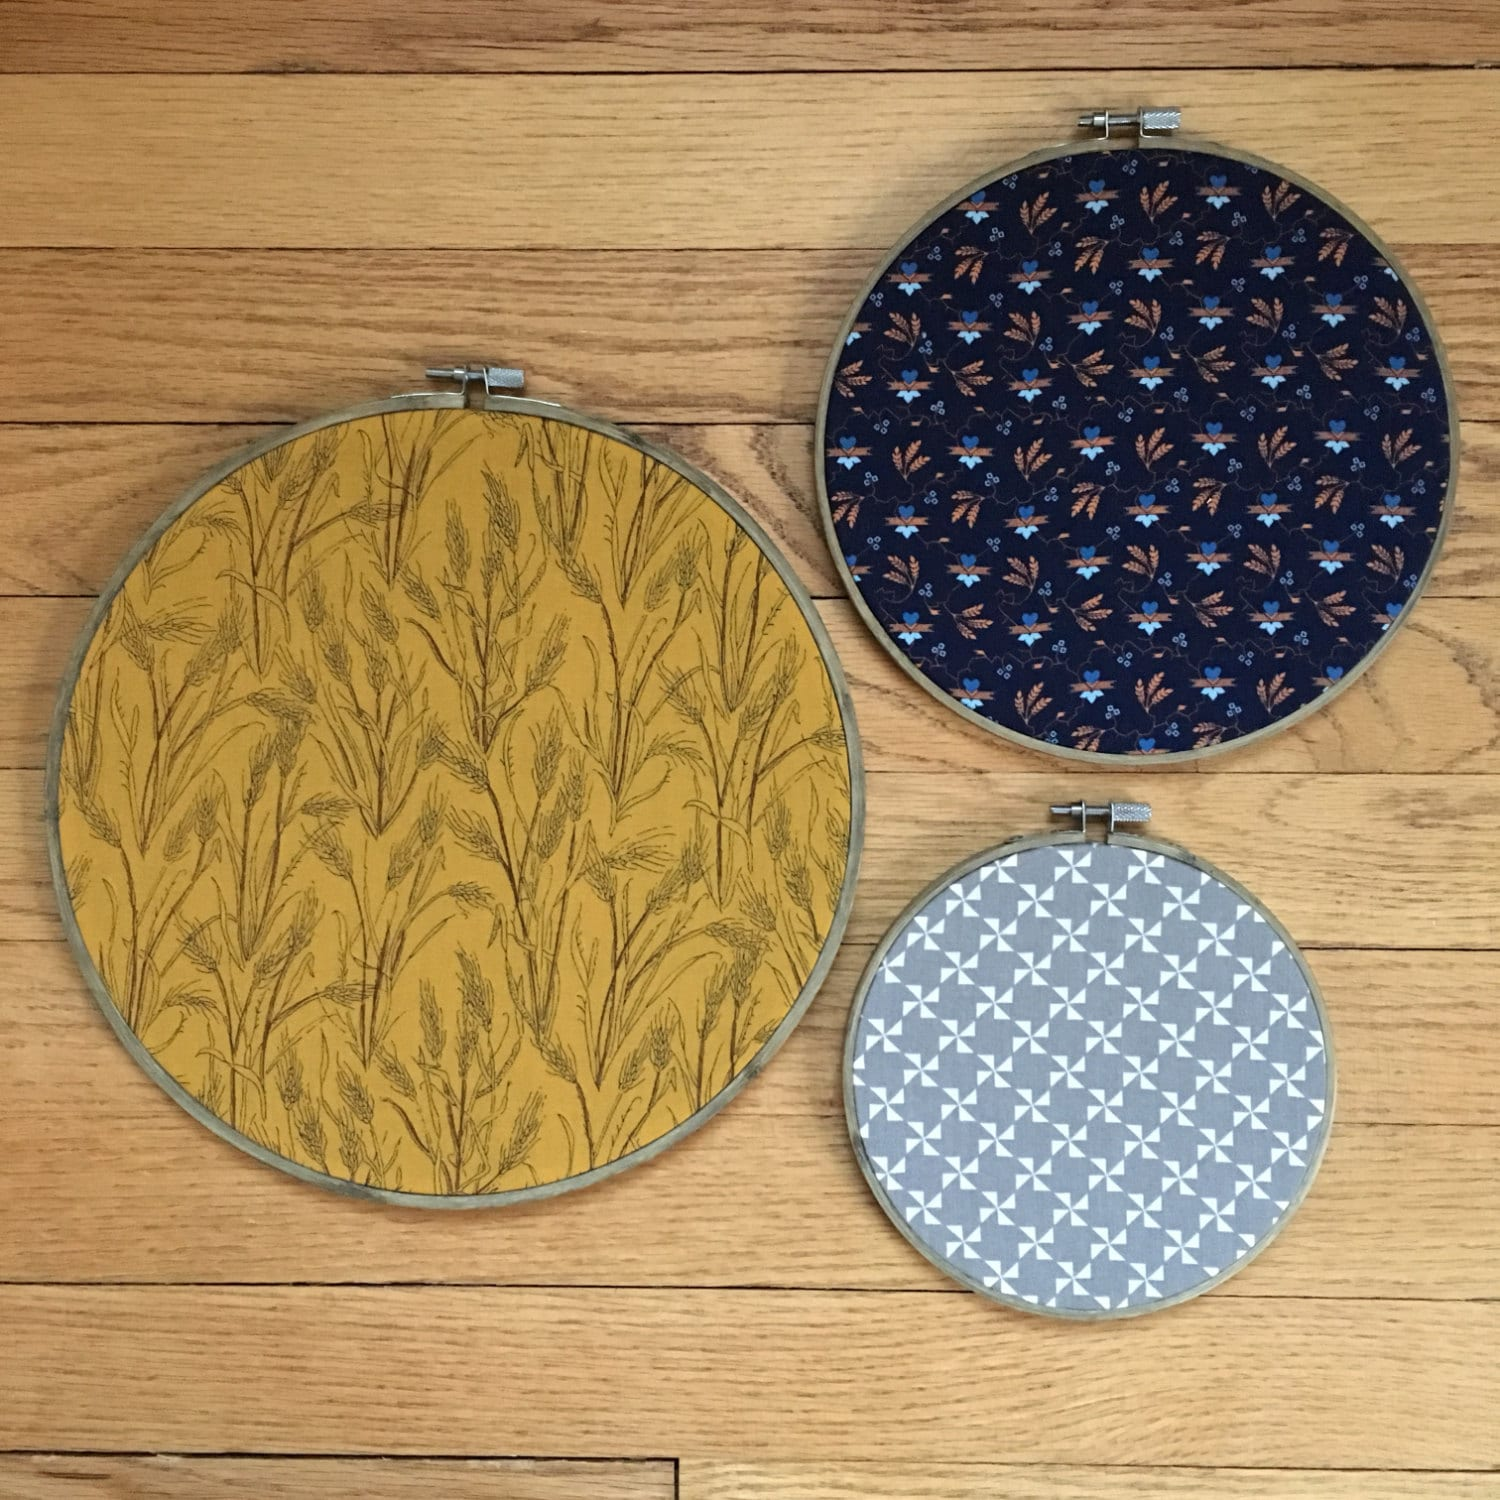 Fabric hoop art set of embroidery wheat wall